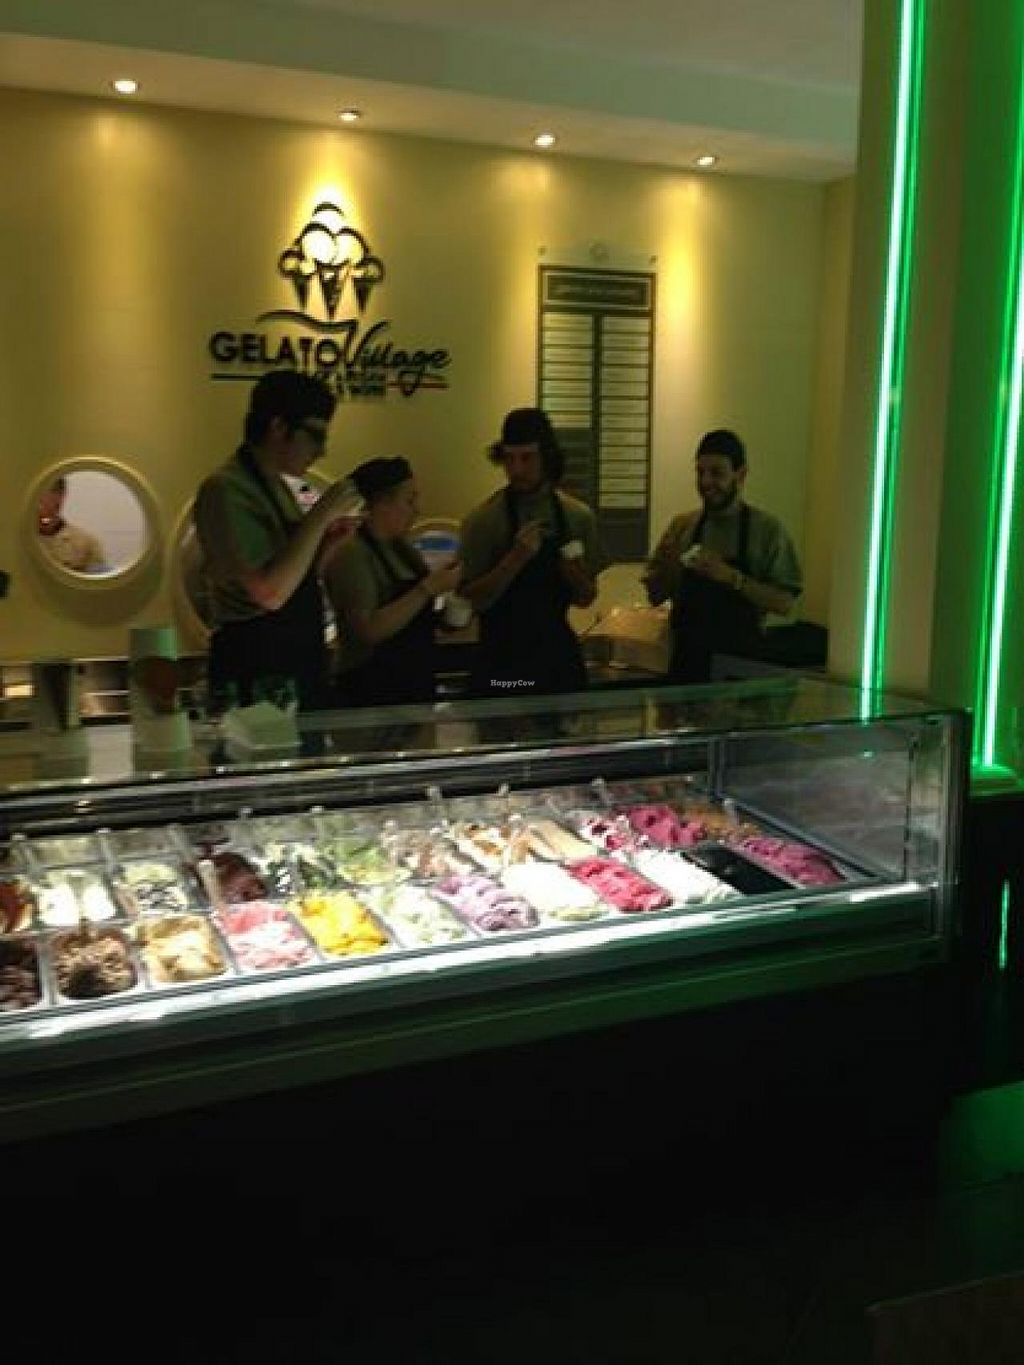 """Photo of Gelato Village  by <a href=""""/members/profile/community"""">community</a> <br/>Gelato Village <br/> August 23, 2014  - <a href='/contact/abuse/image/50629/78036'>Report</a>"""